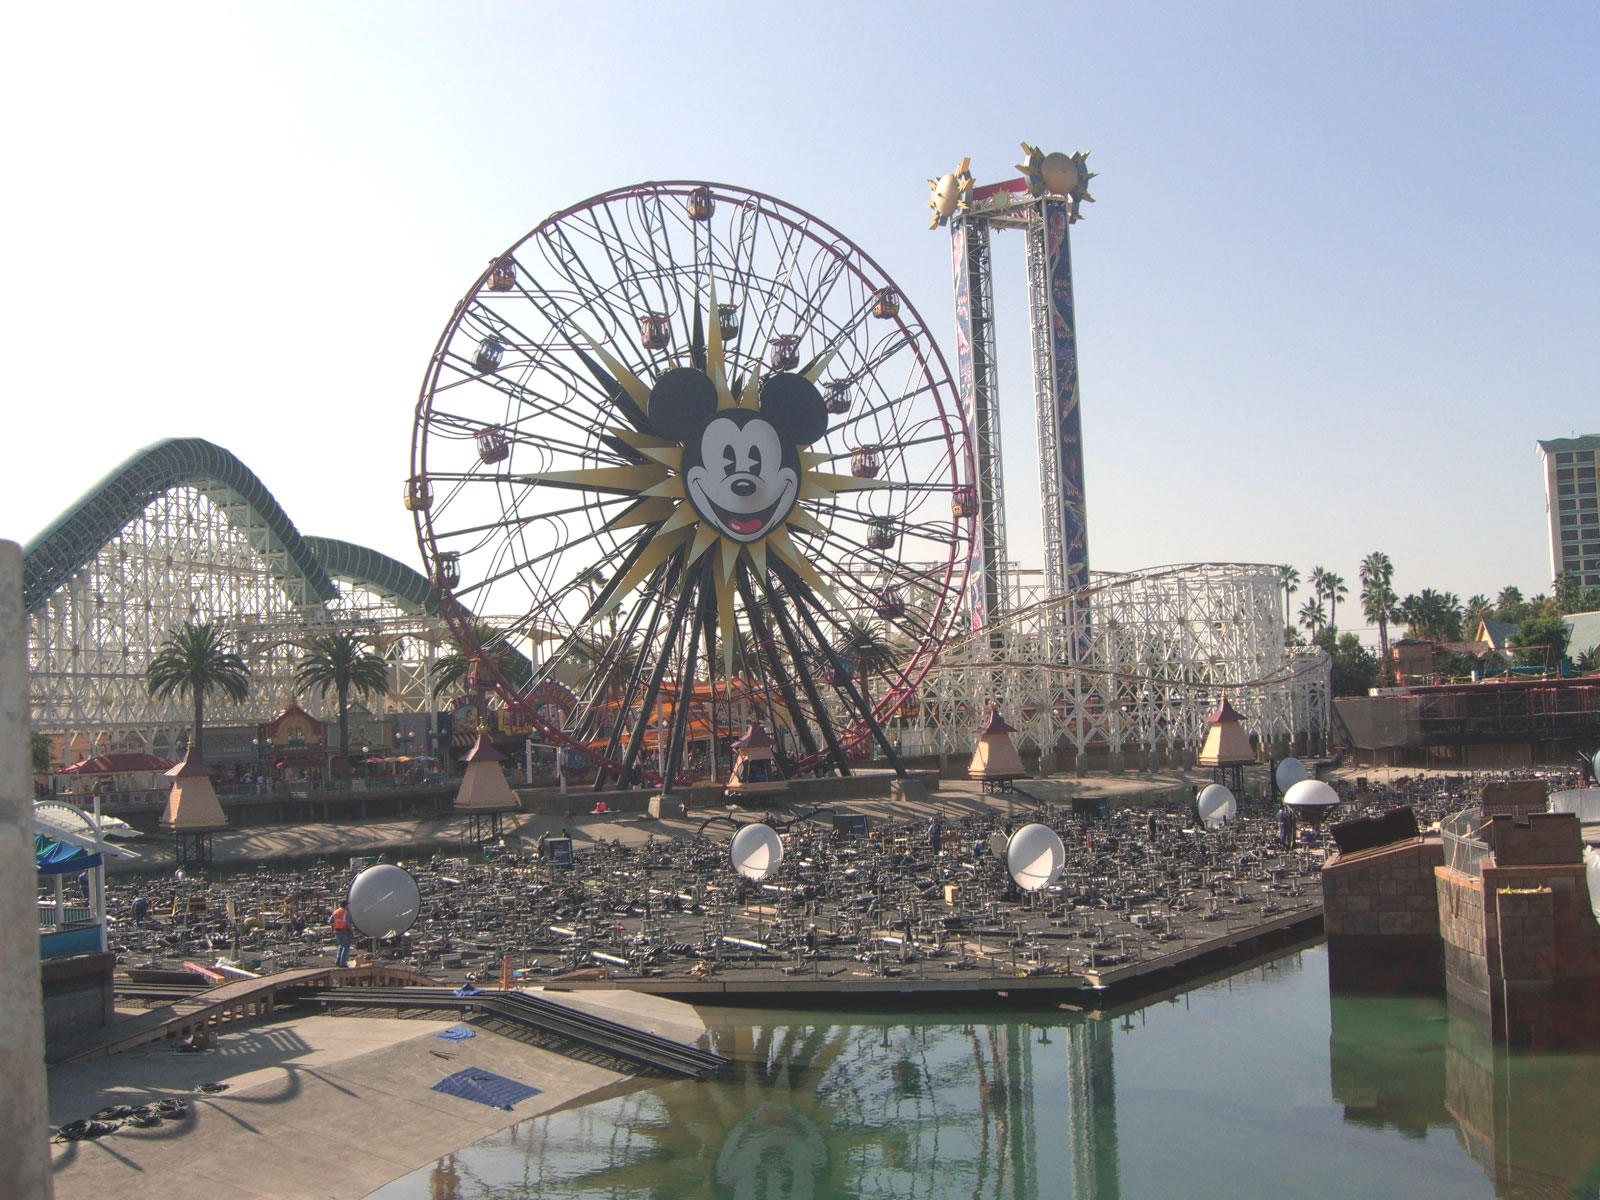 It seems that new equipment is added to the World of Color show platform every week. Photo by Adrienne Vincent-Phoenix.